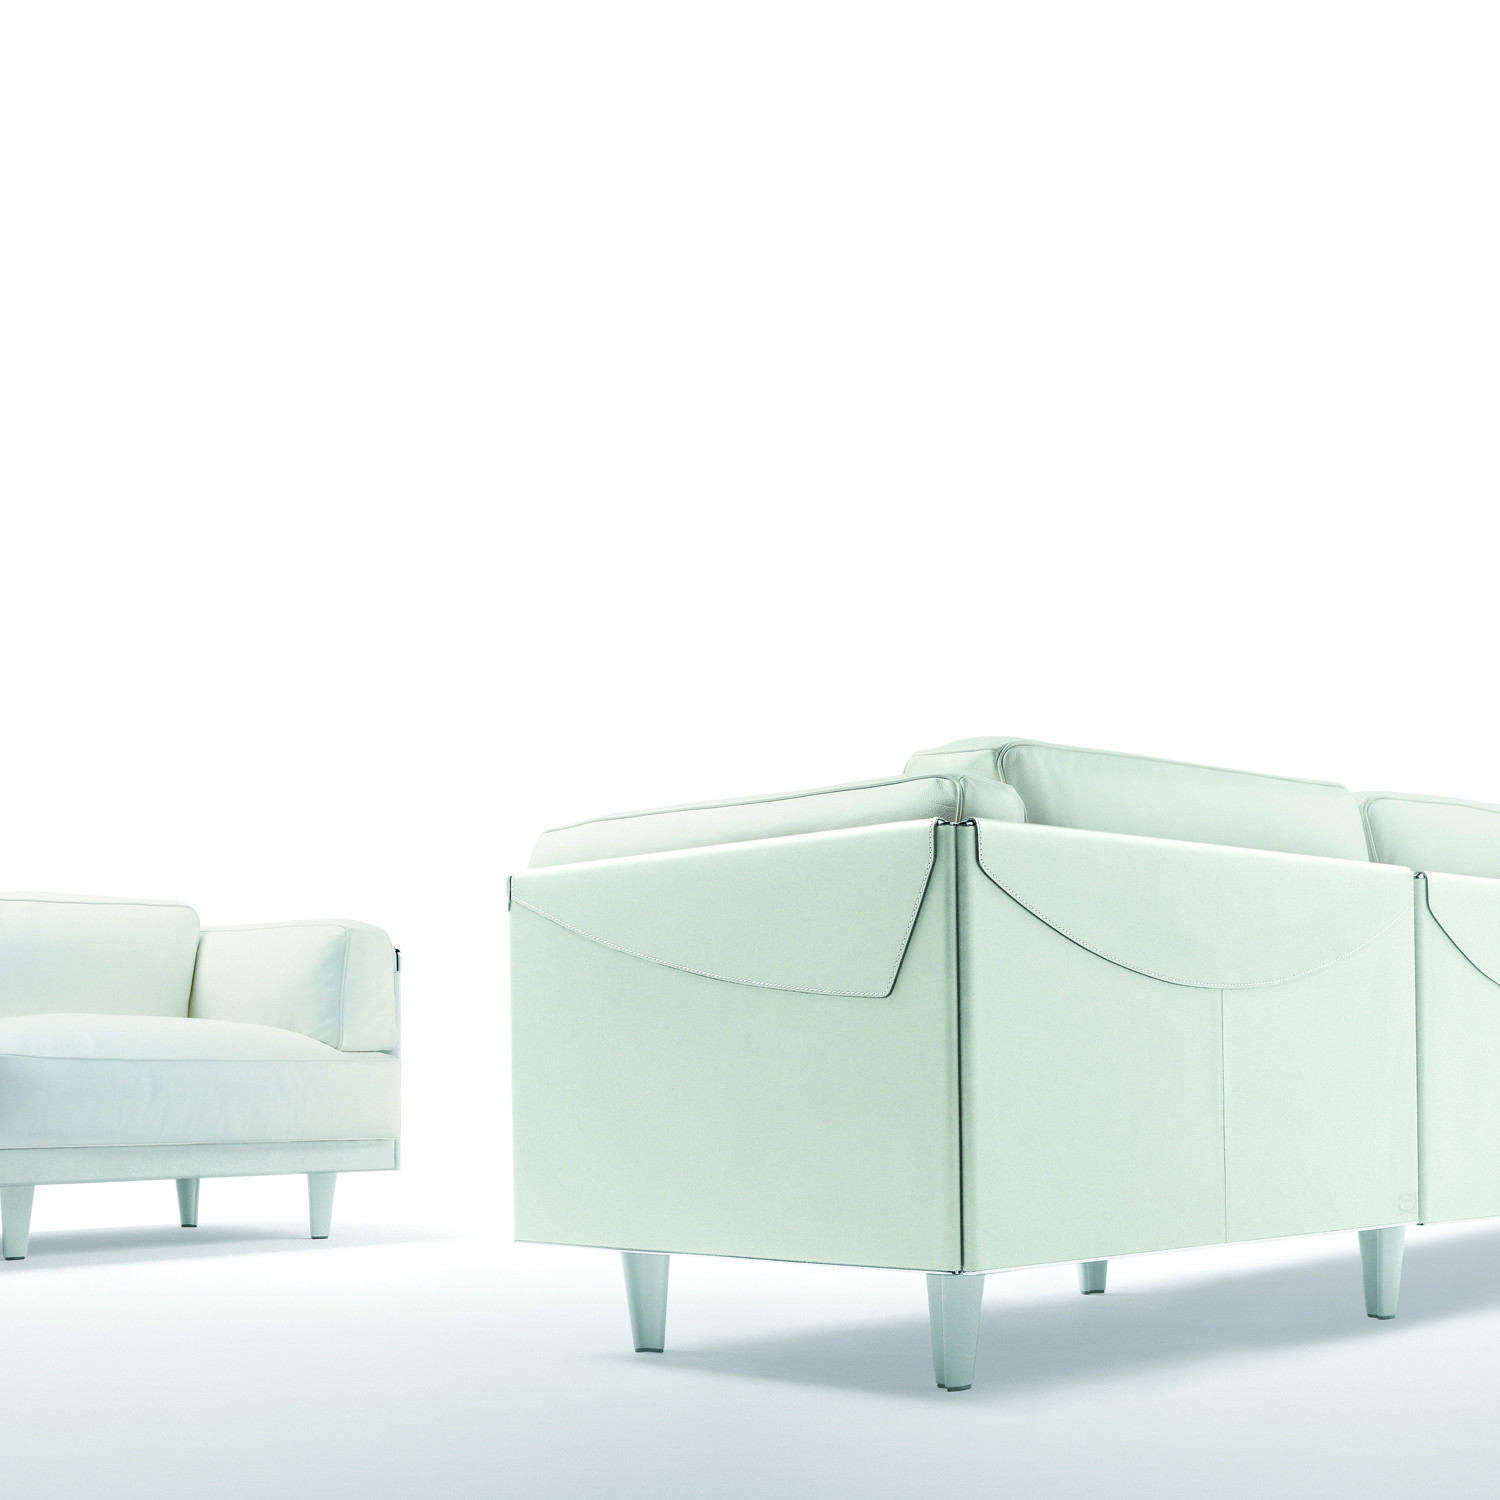 Twice Sofas by Pierluigi Cerri